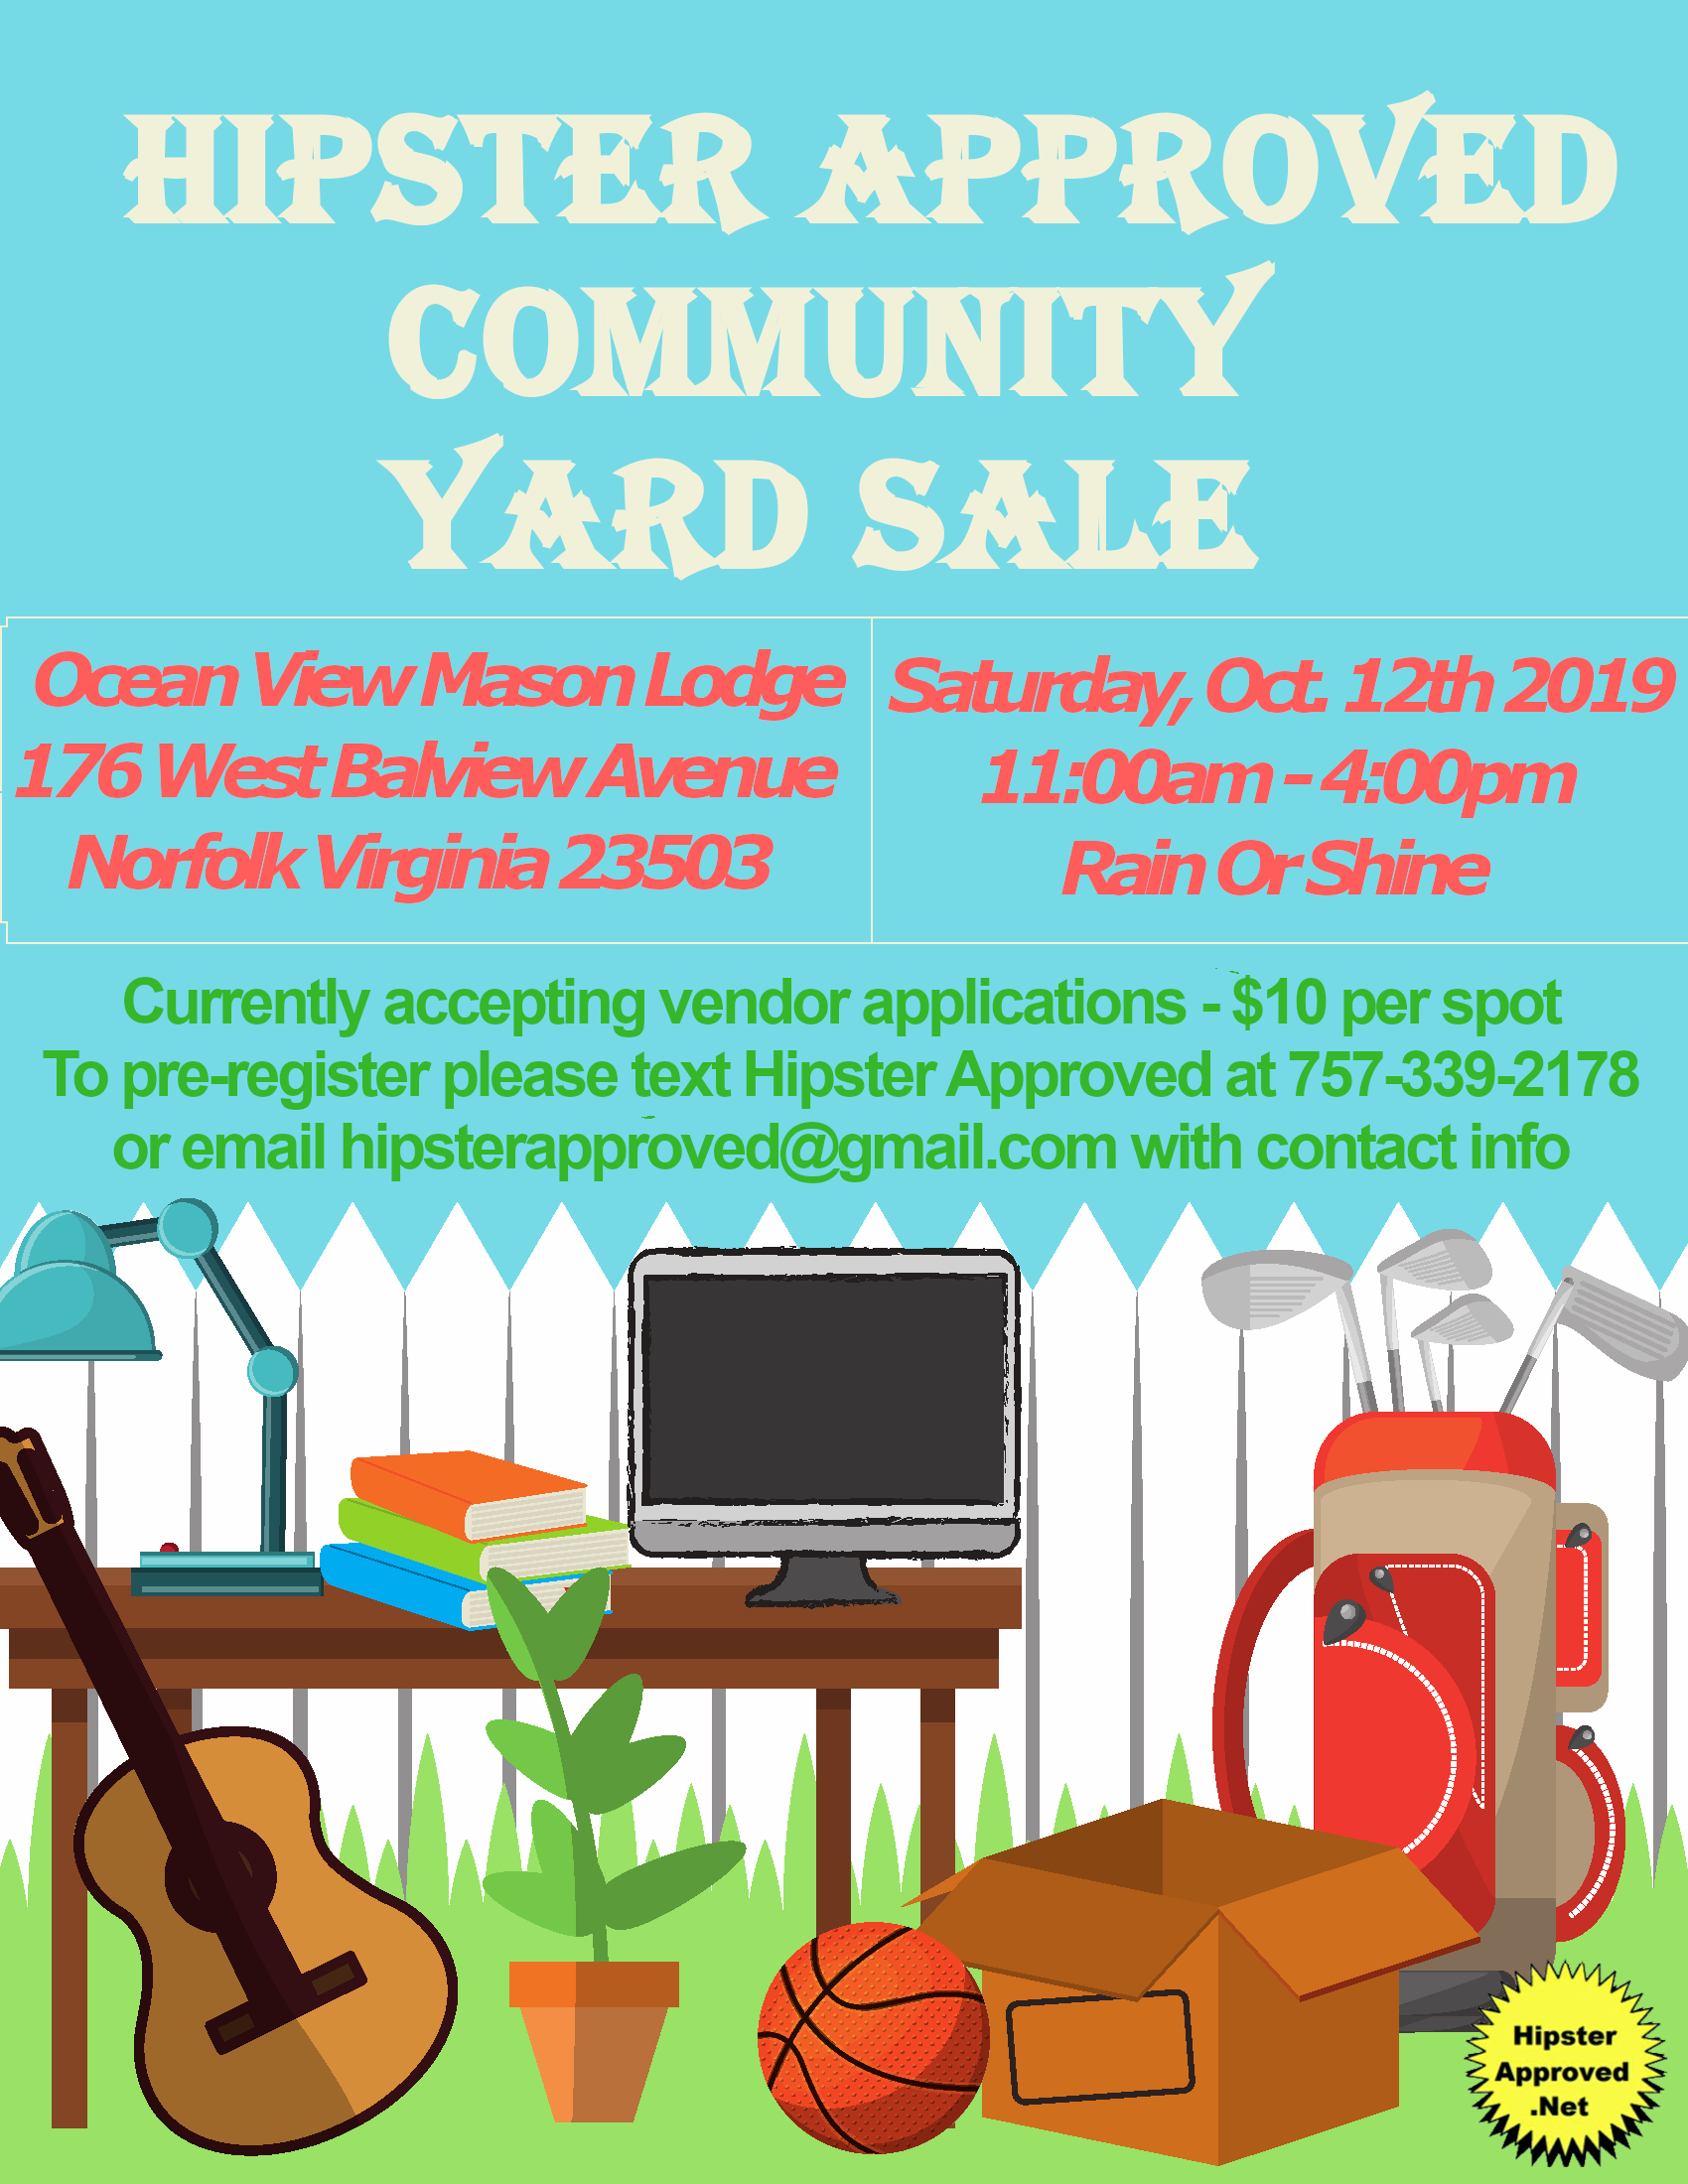 Hipster Approved Community Yard Sale